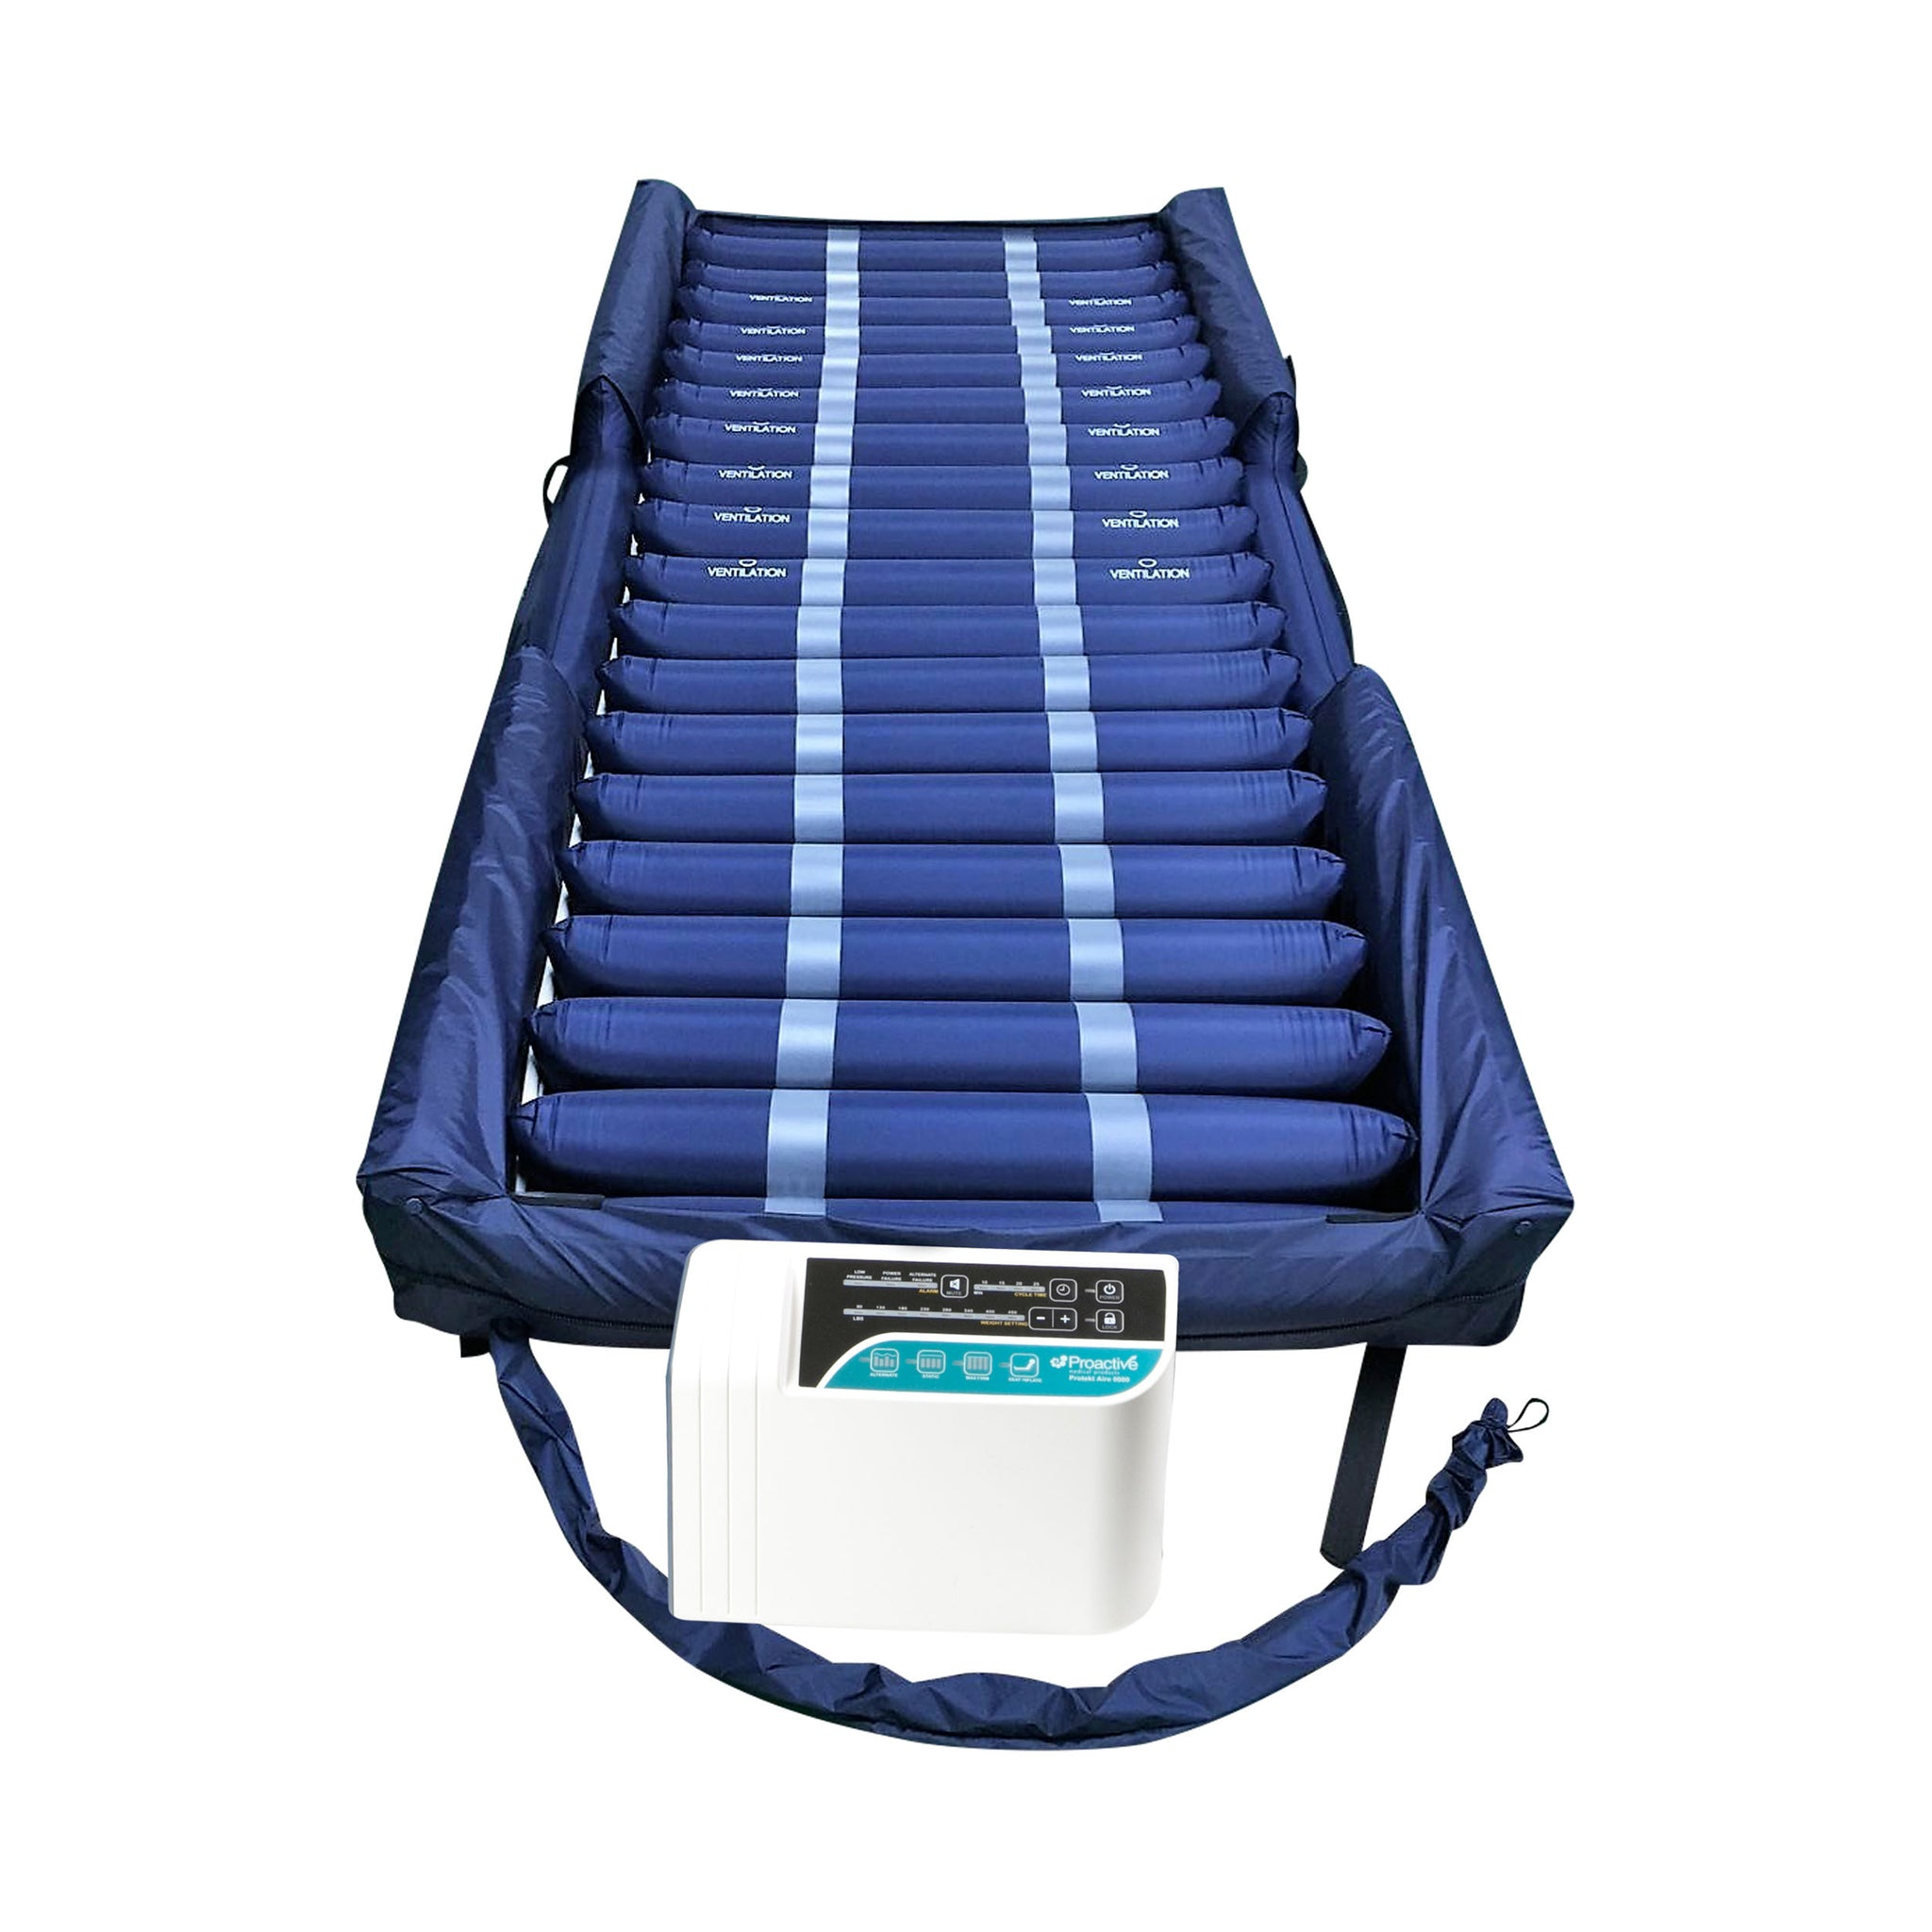 "Proactive Protekt® Aire 6000AB Low Air Loss/Alternating Pressure Mattress System with Deluxe Digital Pump, ""Raised Side  Air Bolsters"" and Cell-On-Cell Support Base"